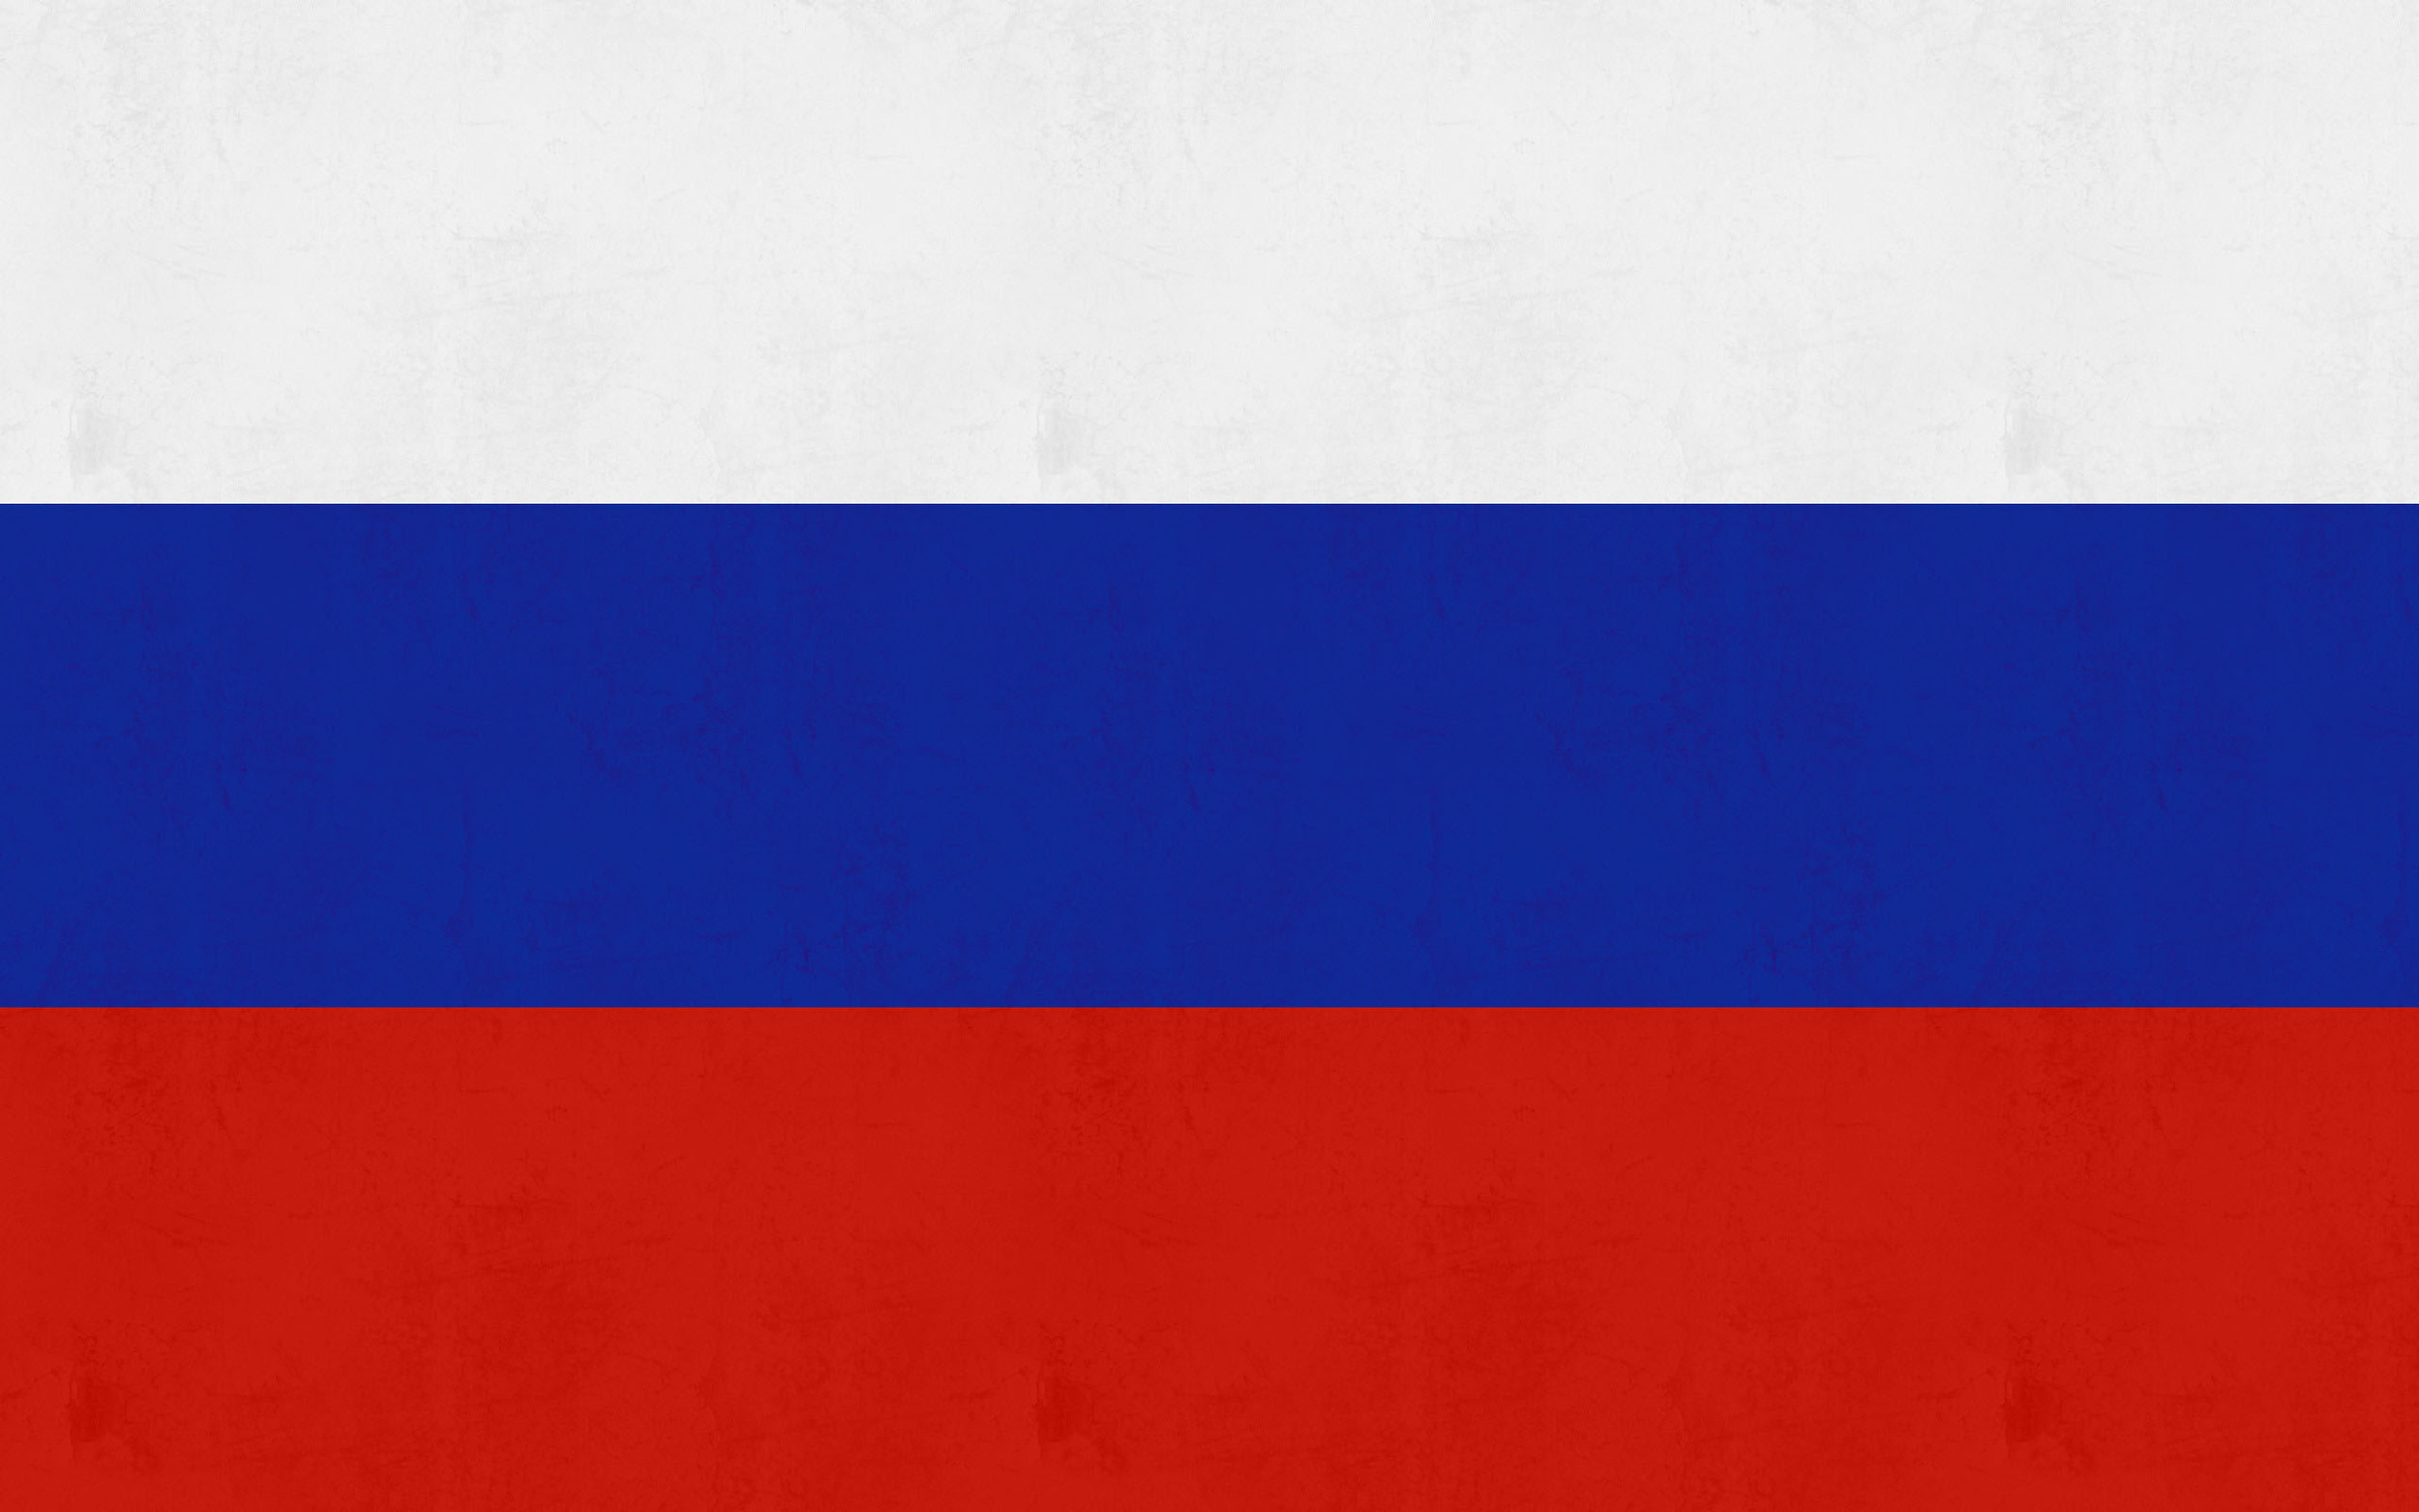 russian-flag-background.jpg